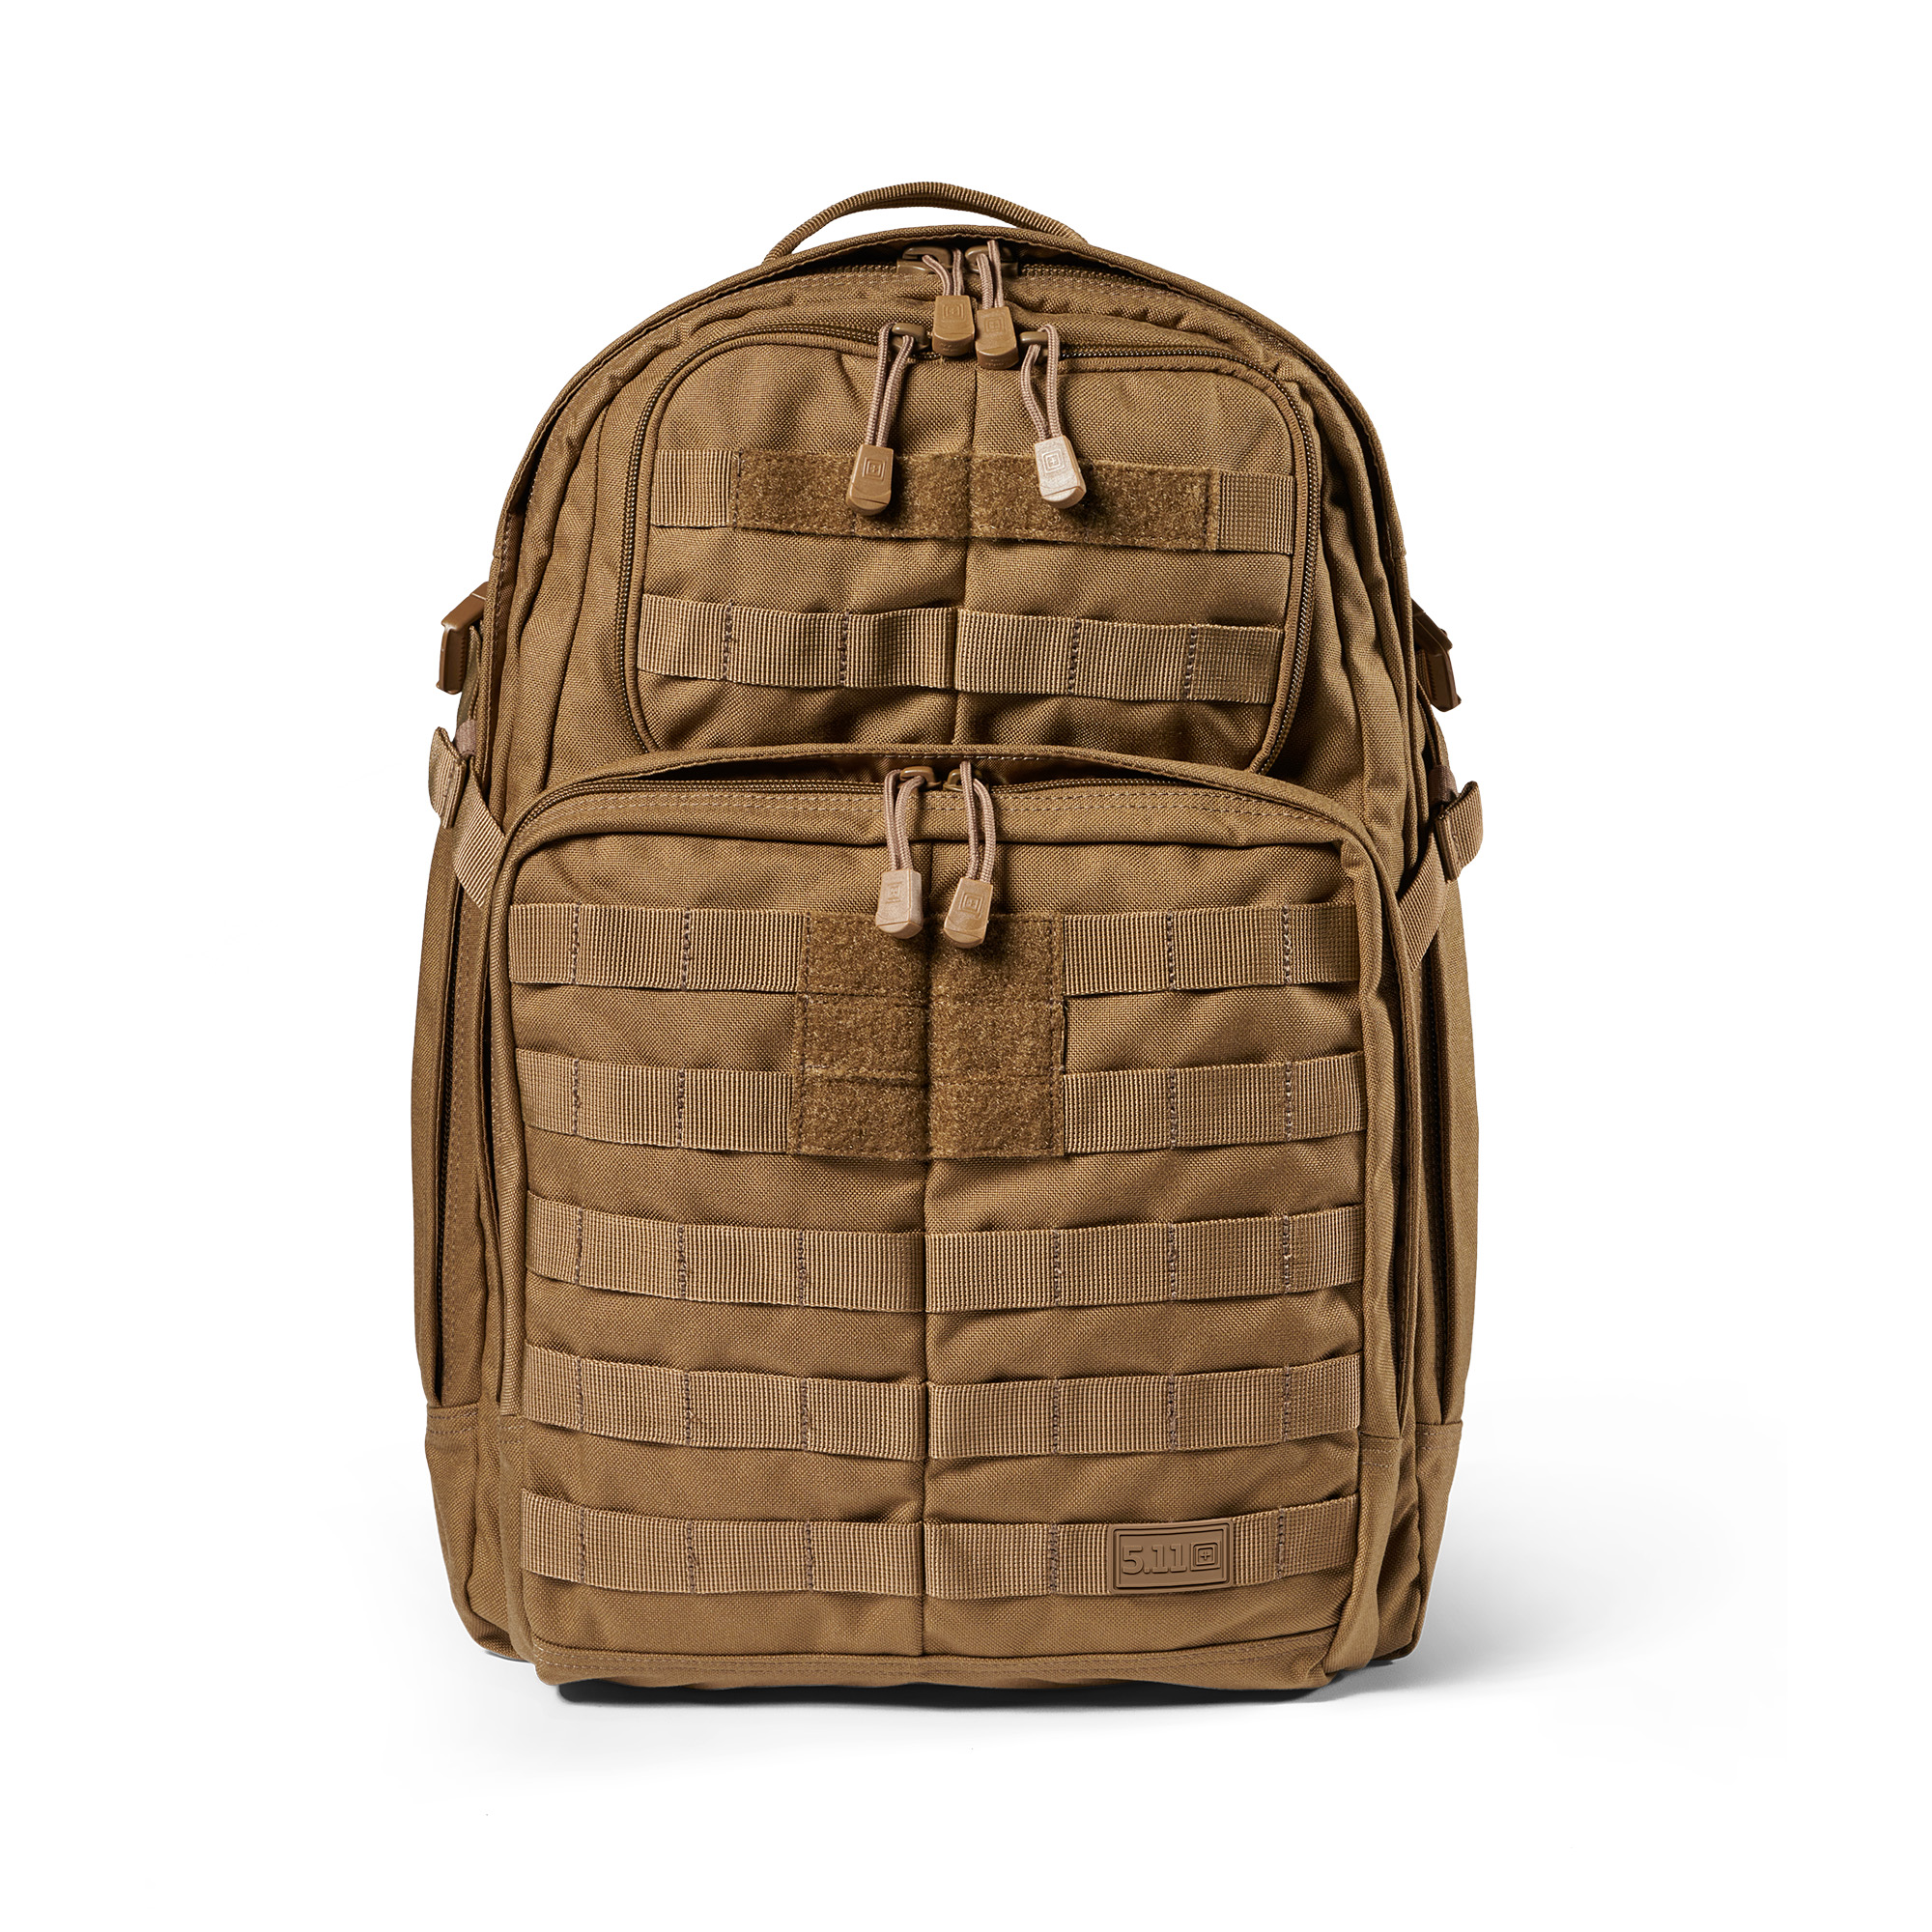 Balo 5.11 Tactical Rush 24 2.0 – Kangaroo